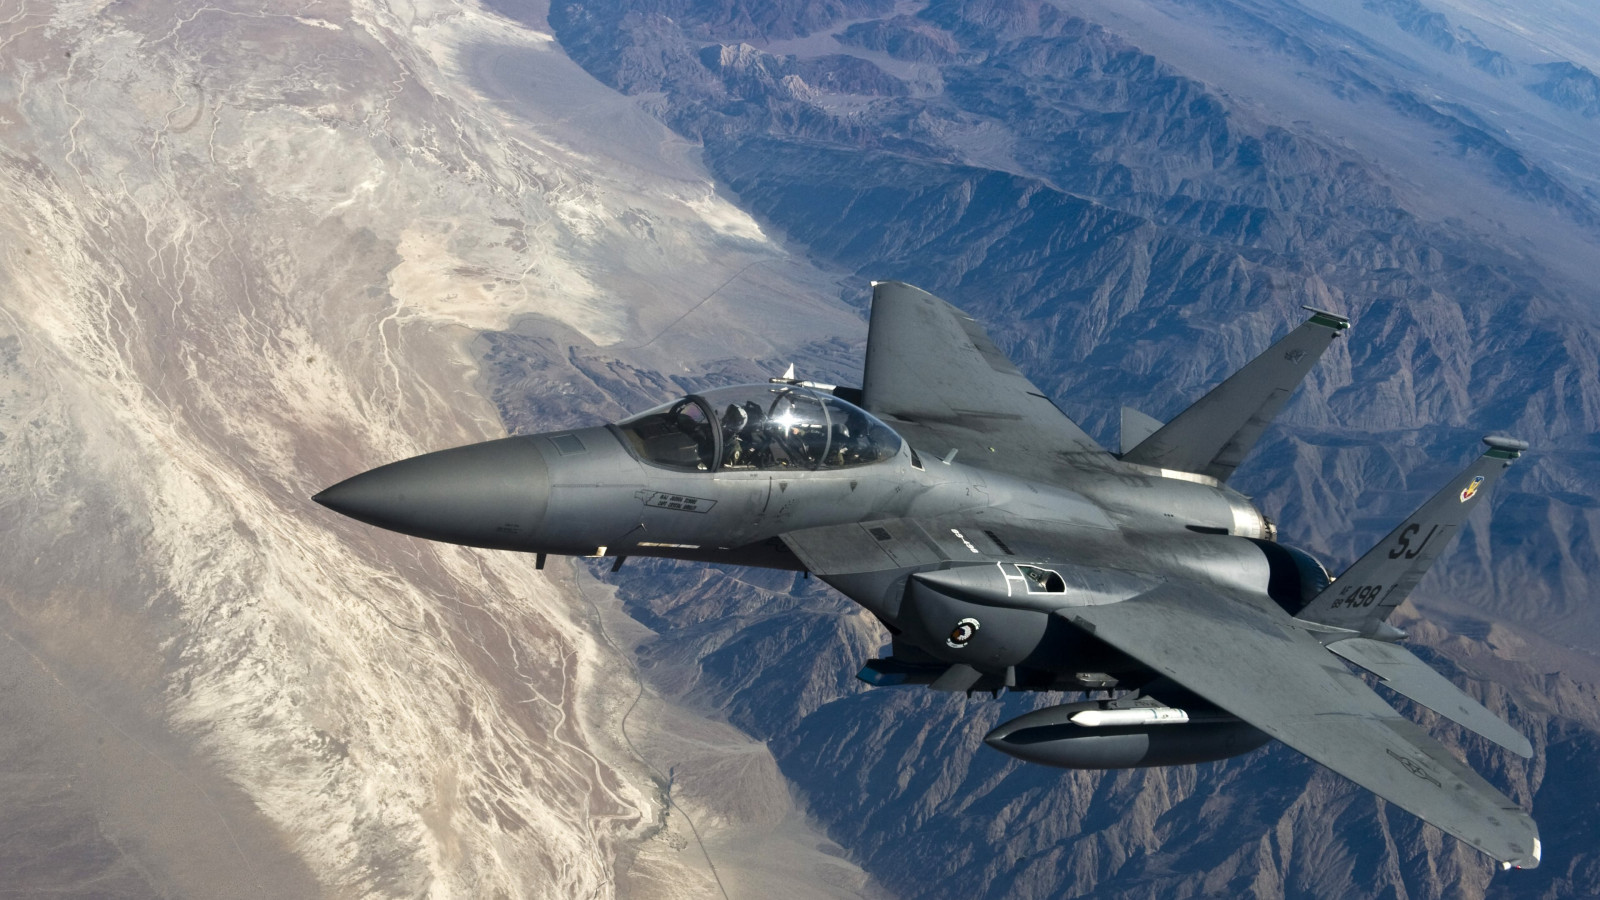 F 15 Strike Eagle wallpaper 1600x900